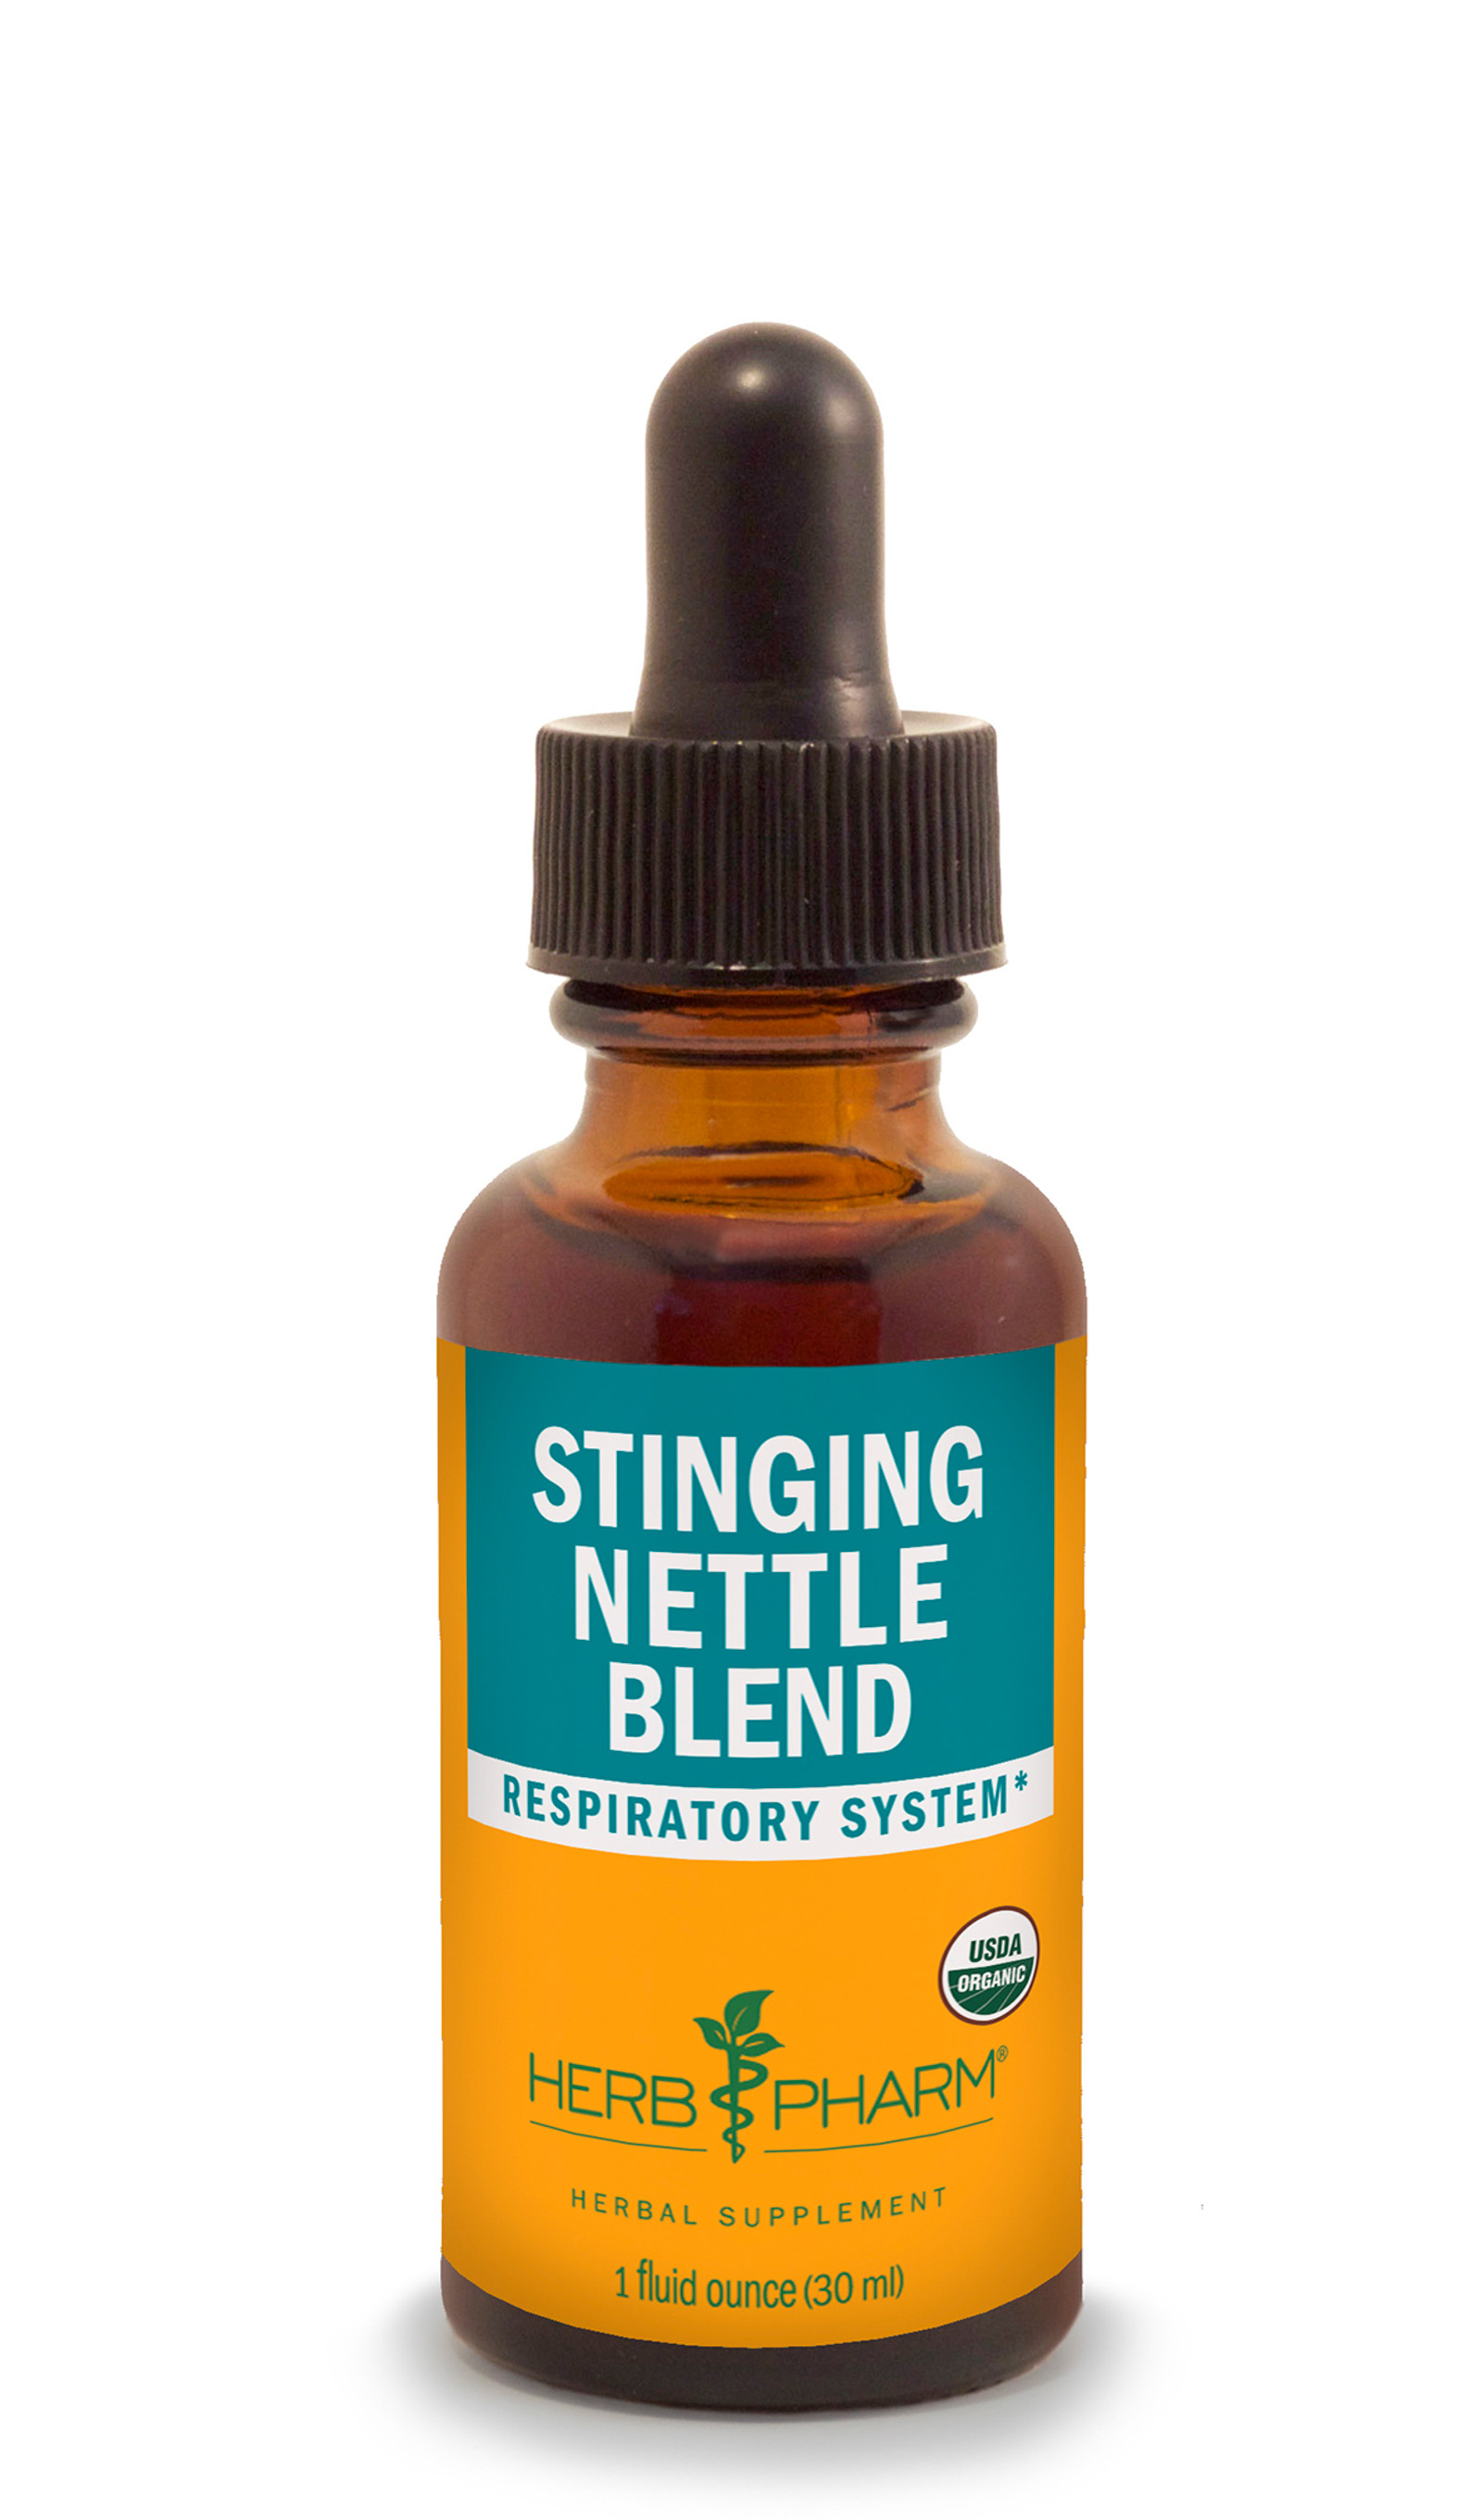 Stinging Nettle Blend Liquid Extract (Herb Pharm)